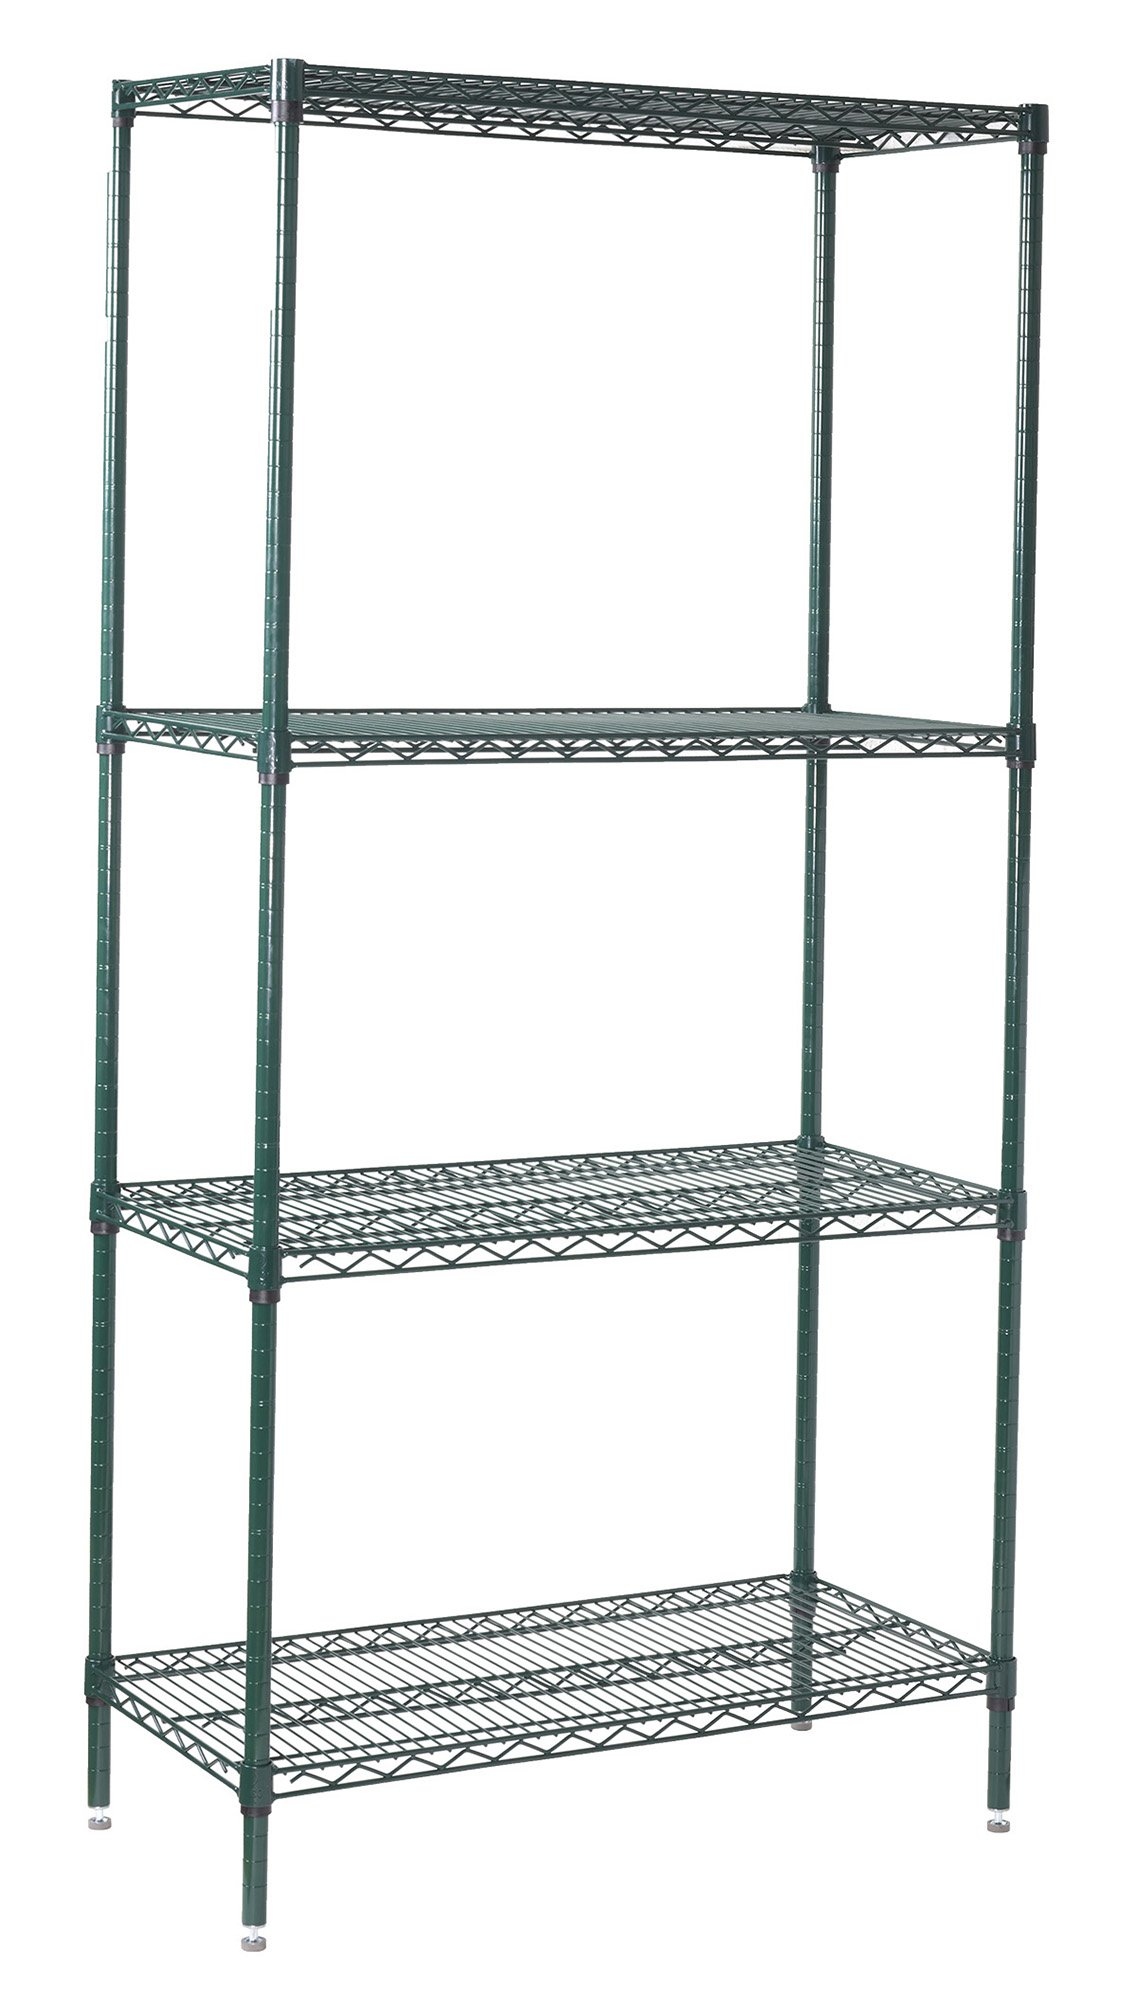 Winco VEXS-1848 4-Tier Wire Shelving Set, Epoxy Coated, 18'' X 48'' X 72'' by Winco